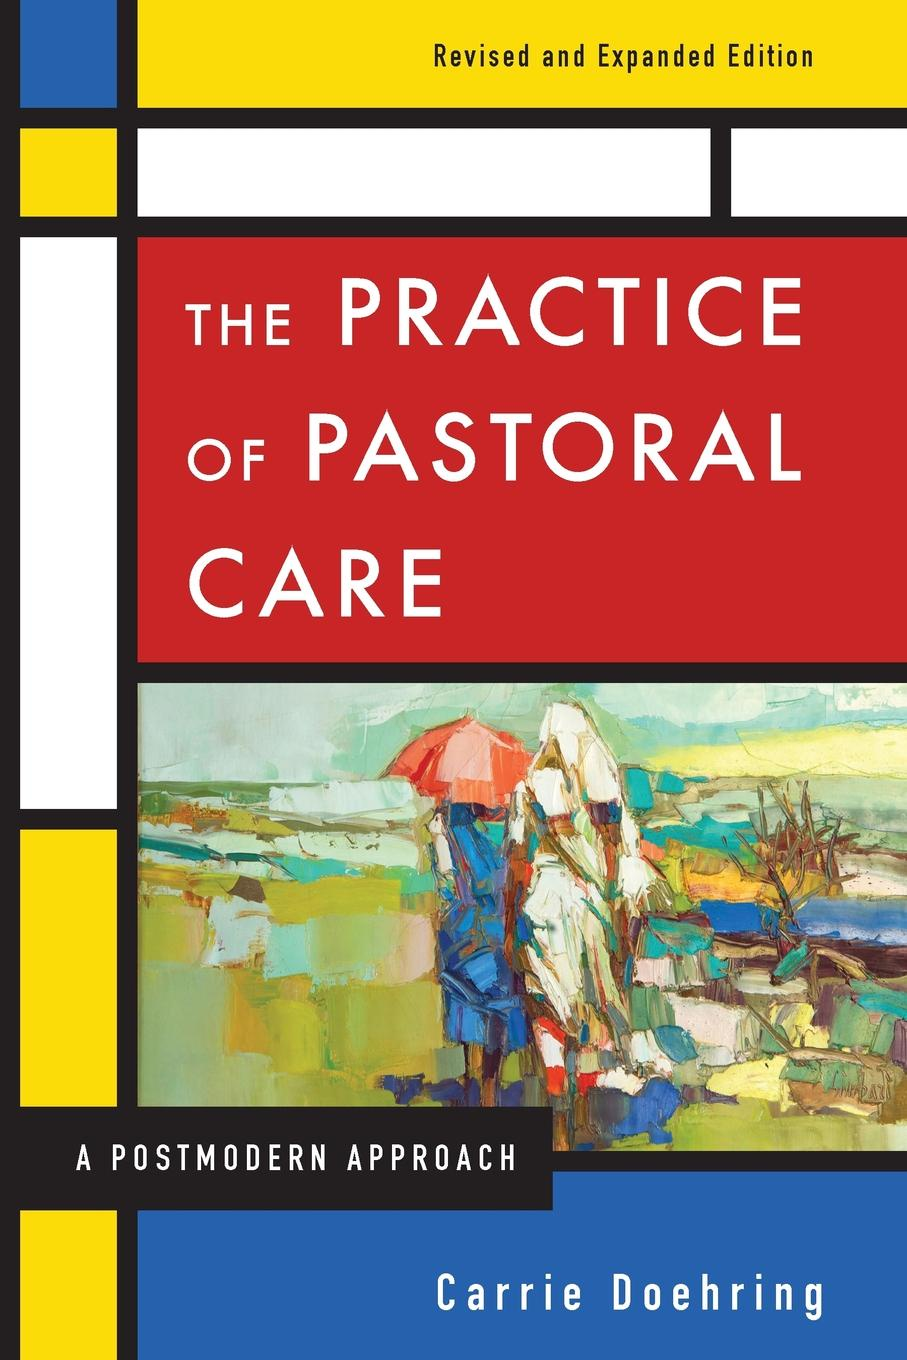 Carrie Doehring The Practice of Pastoral Care, Rev. and Exp. Ed waters and the wild air exp